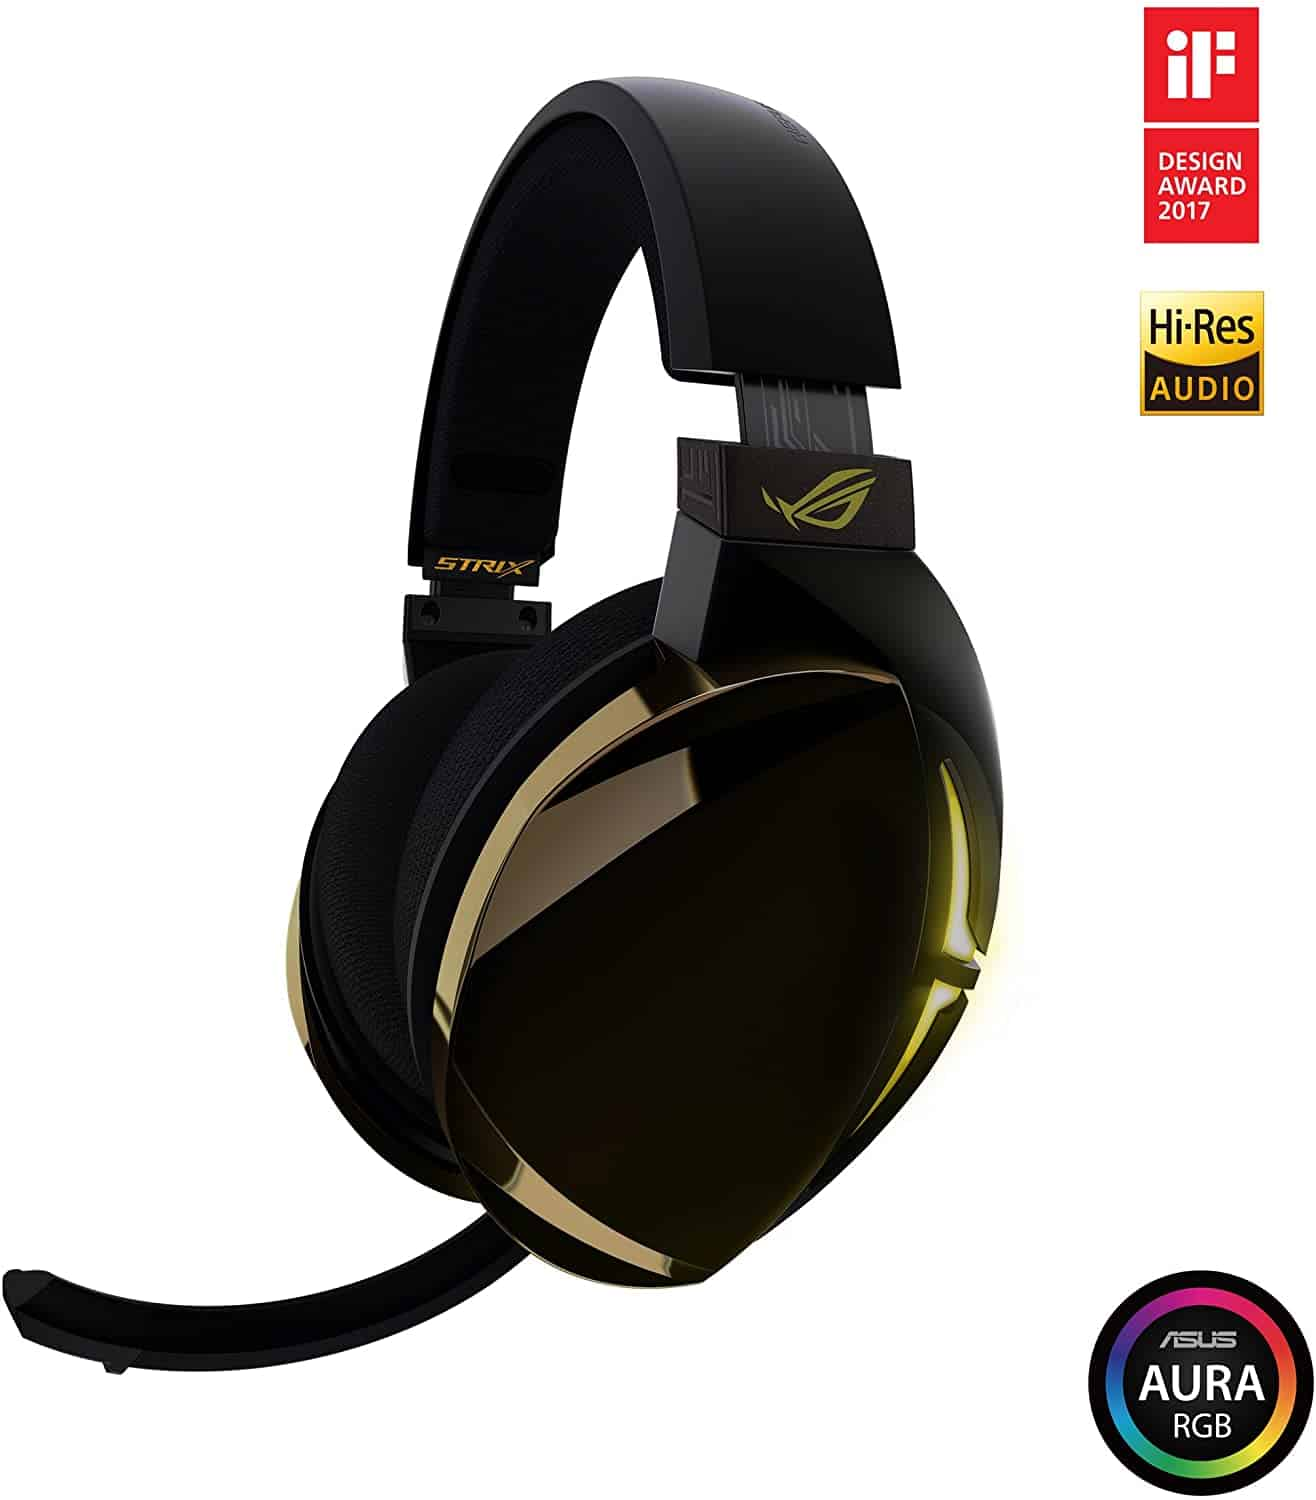 Top 7 Best Wireless Gaming Headset For Ps4 Tech Reviewer Pro